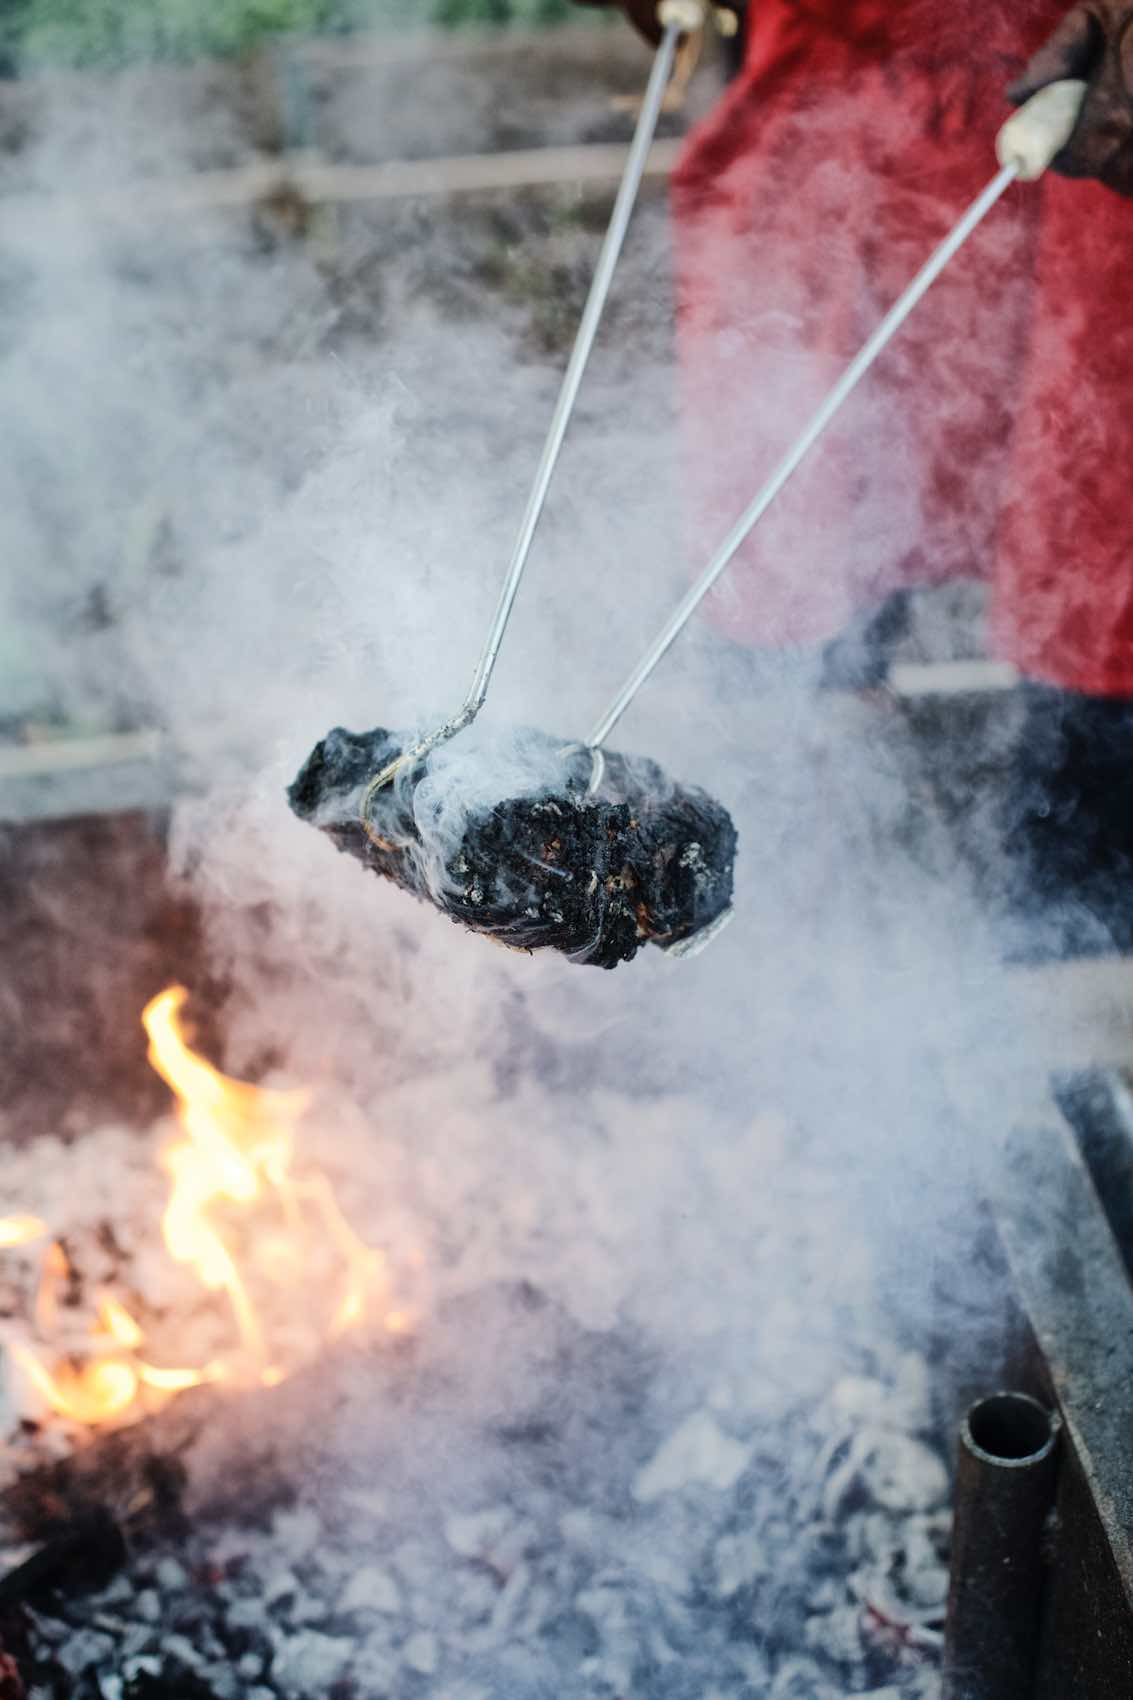 Jody Horton Photography - Blackened meat pulled from fire.